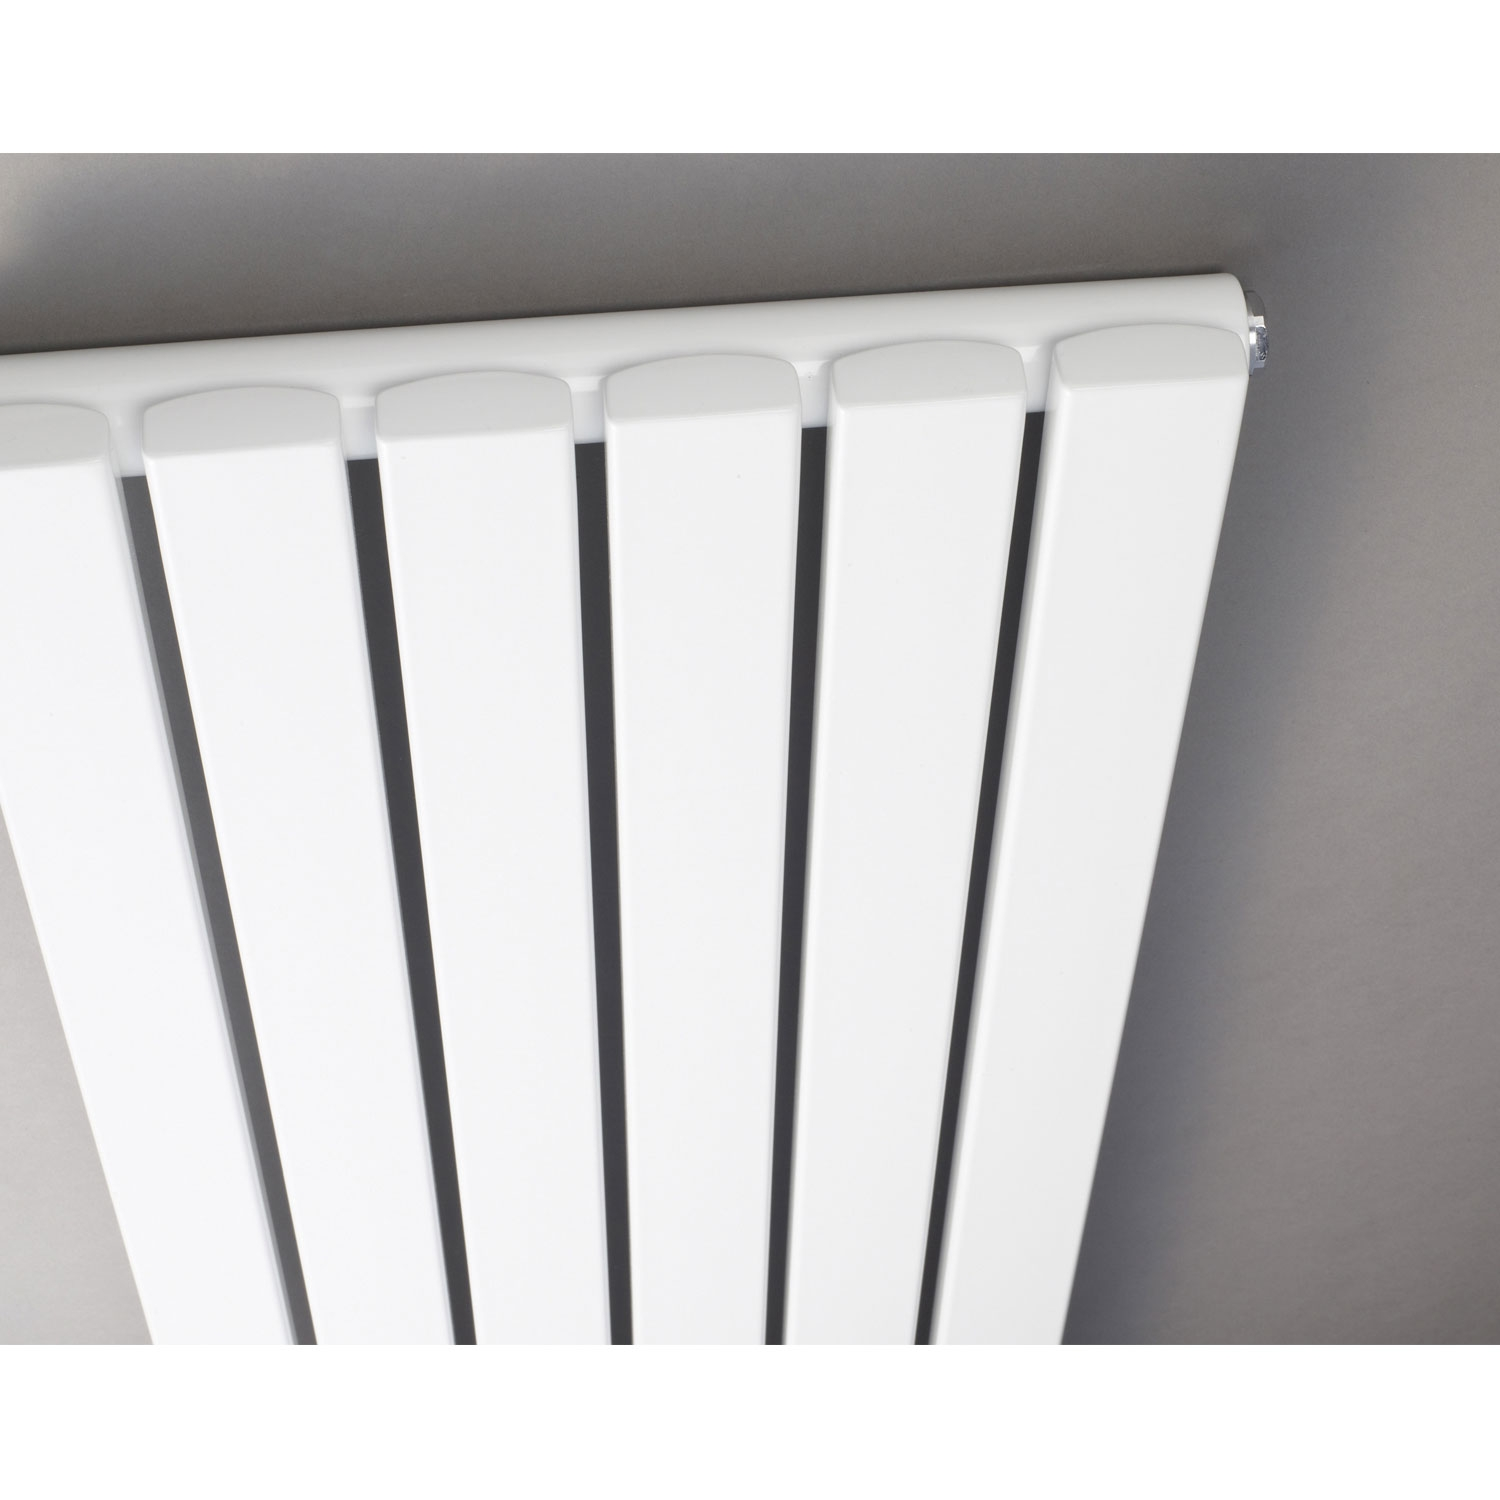 Hudson Reed Revive Single Designer Vertical Radiator 1800mm H x 354mm W White